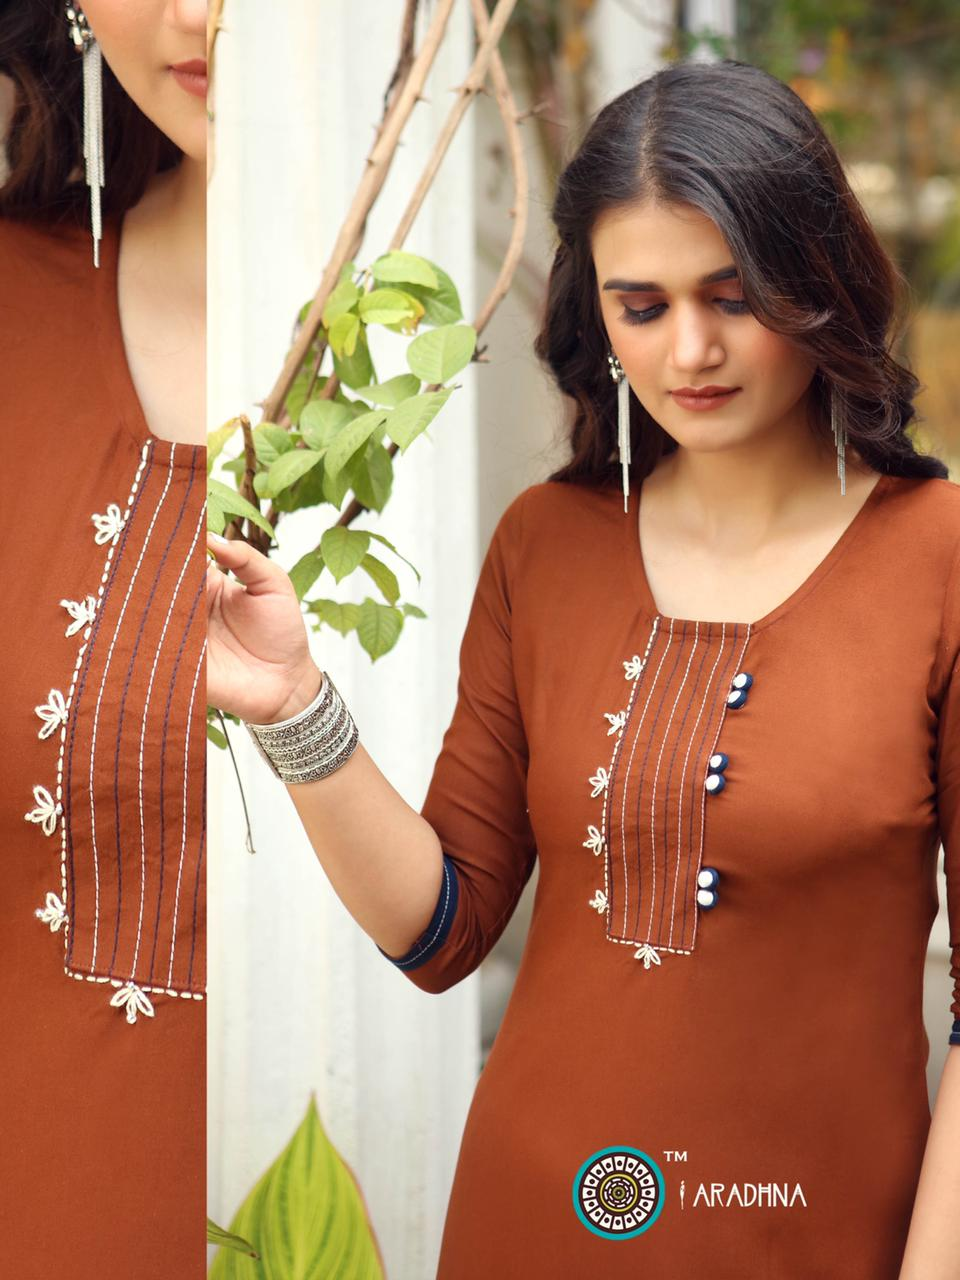 Aradhna Parrot Vol 7 Kurti Wholesale Catalog 11 Pcs 14 - Aradhna Parrot Vol 7 Kurti Wholesale Catalog 11 Pcs